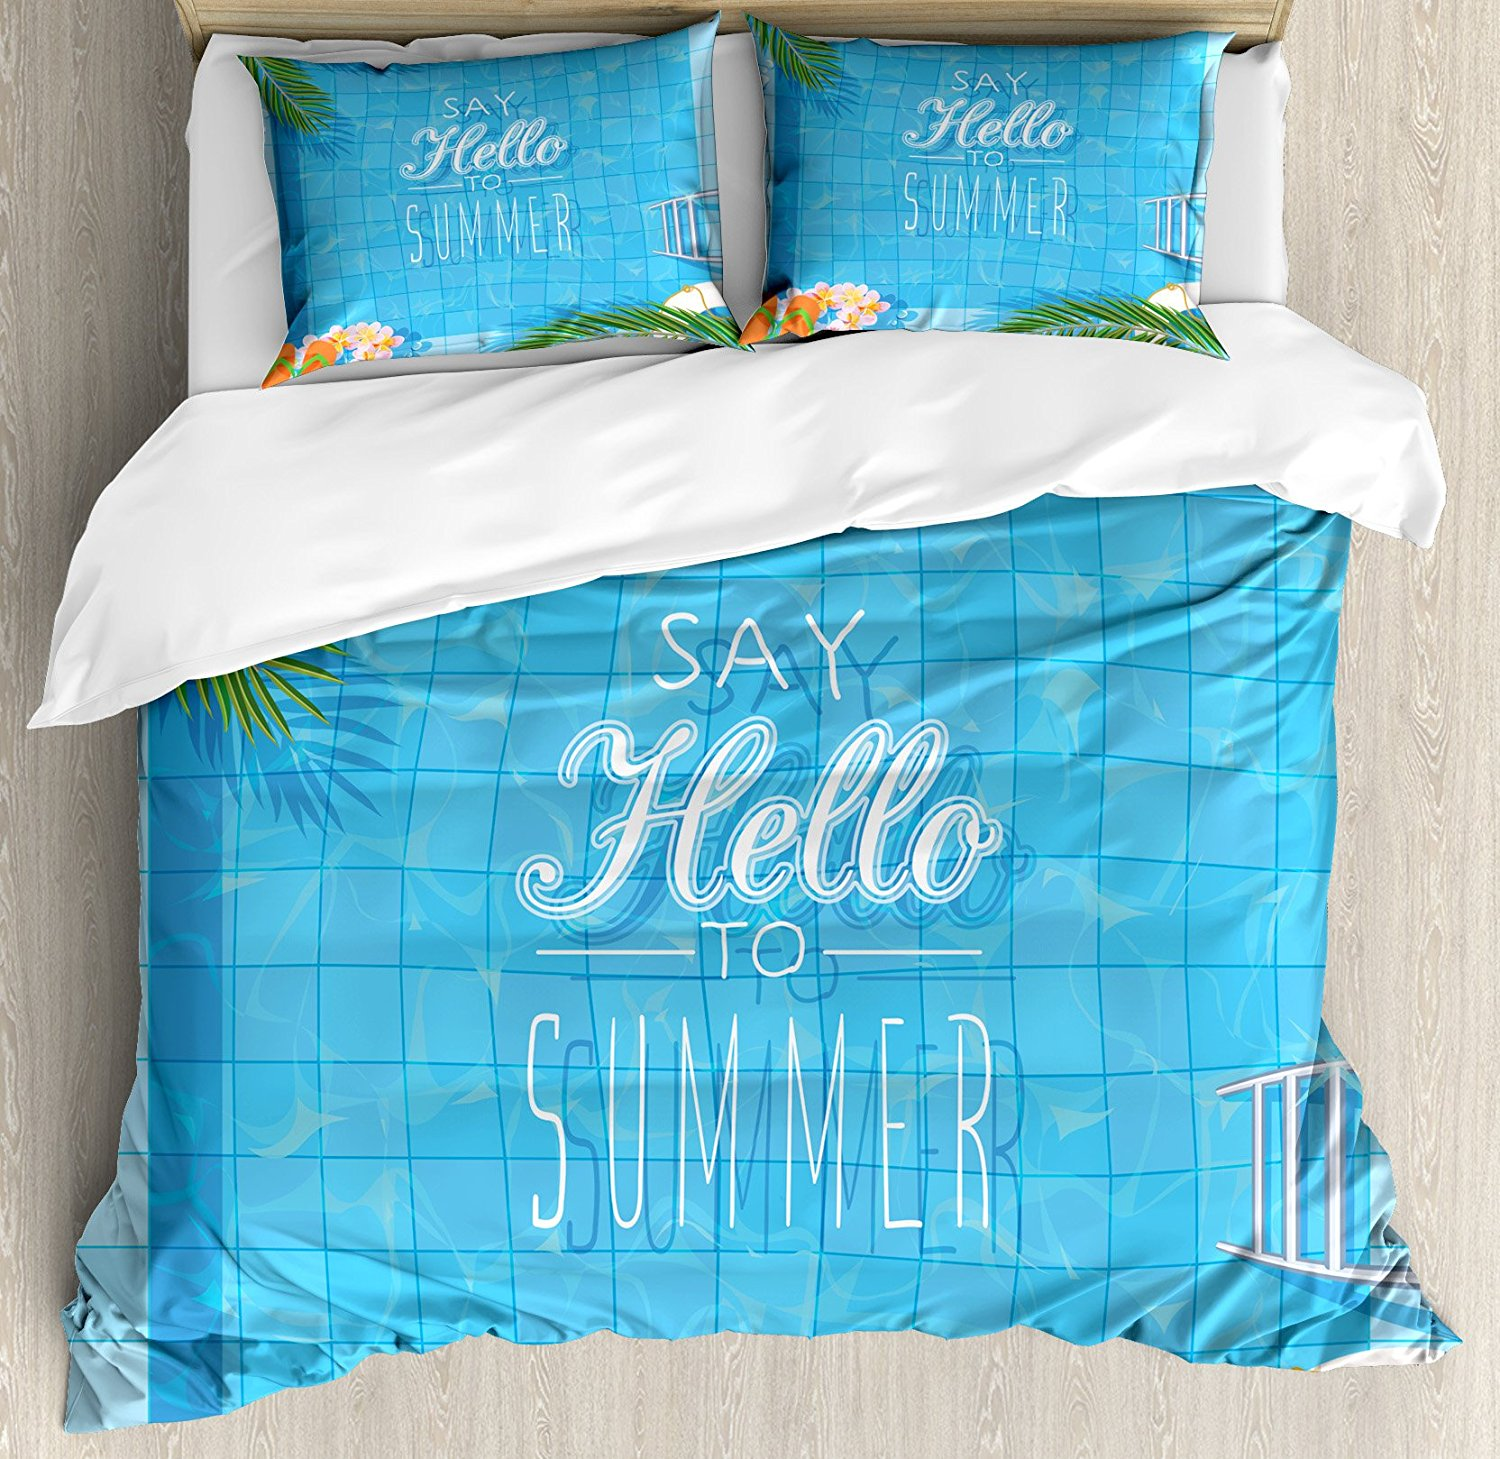 Quote Duvet Cover Set Say Hello To The Summer Slogan On A Pool With Ladder Flip Flops And Flowers Design Decor 4pcs Bedding Set Curing Cough And Facilitating Expectoration And Relieving Hoarseness Home Textile Bedding Sets